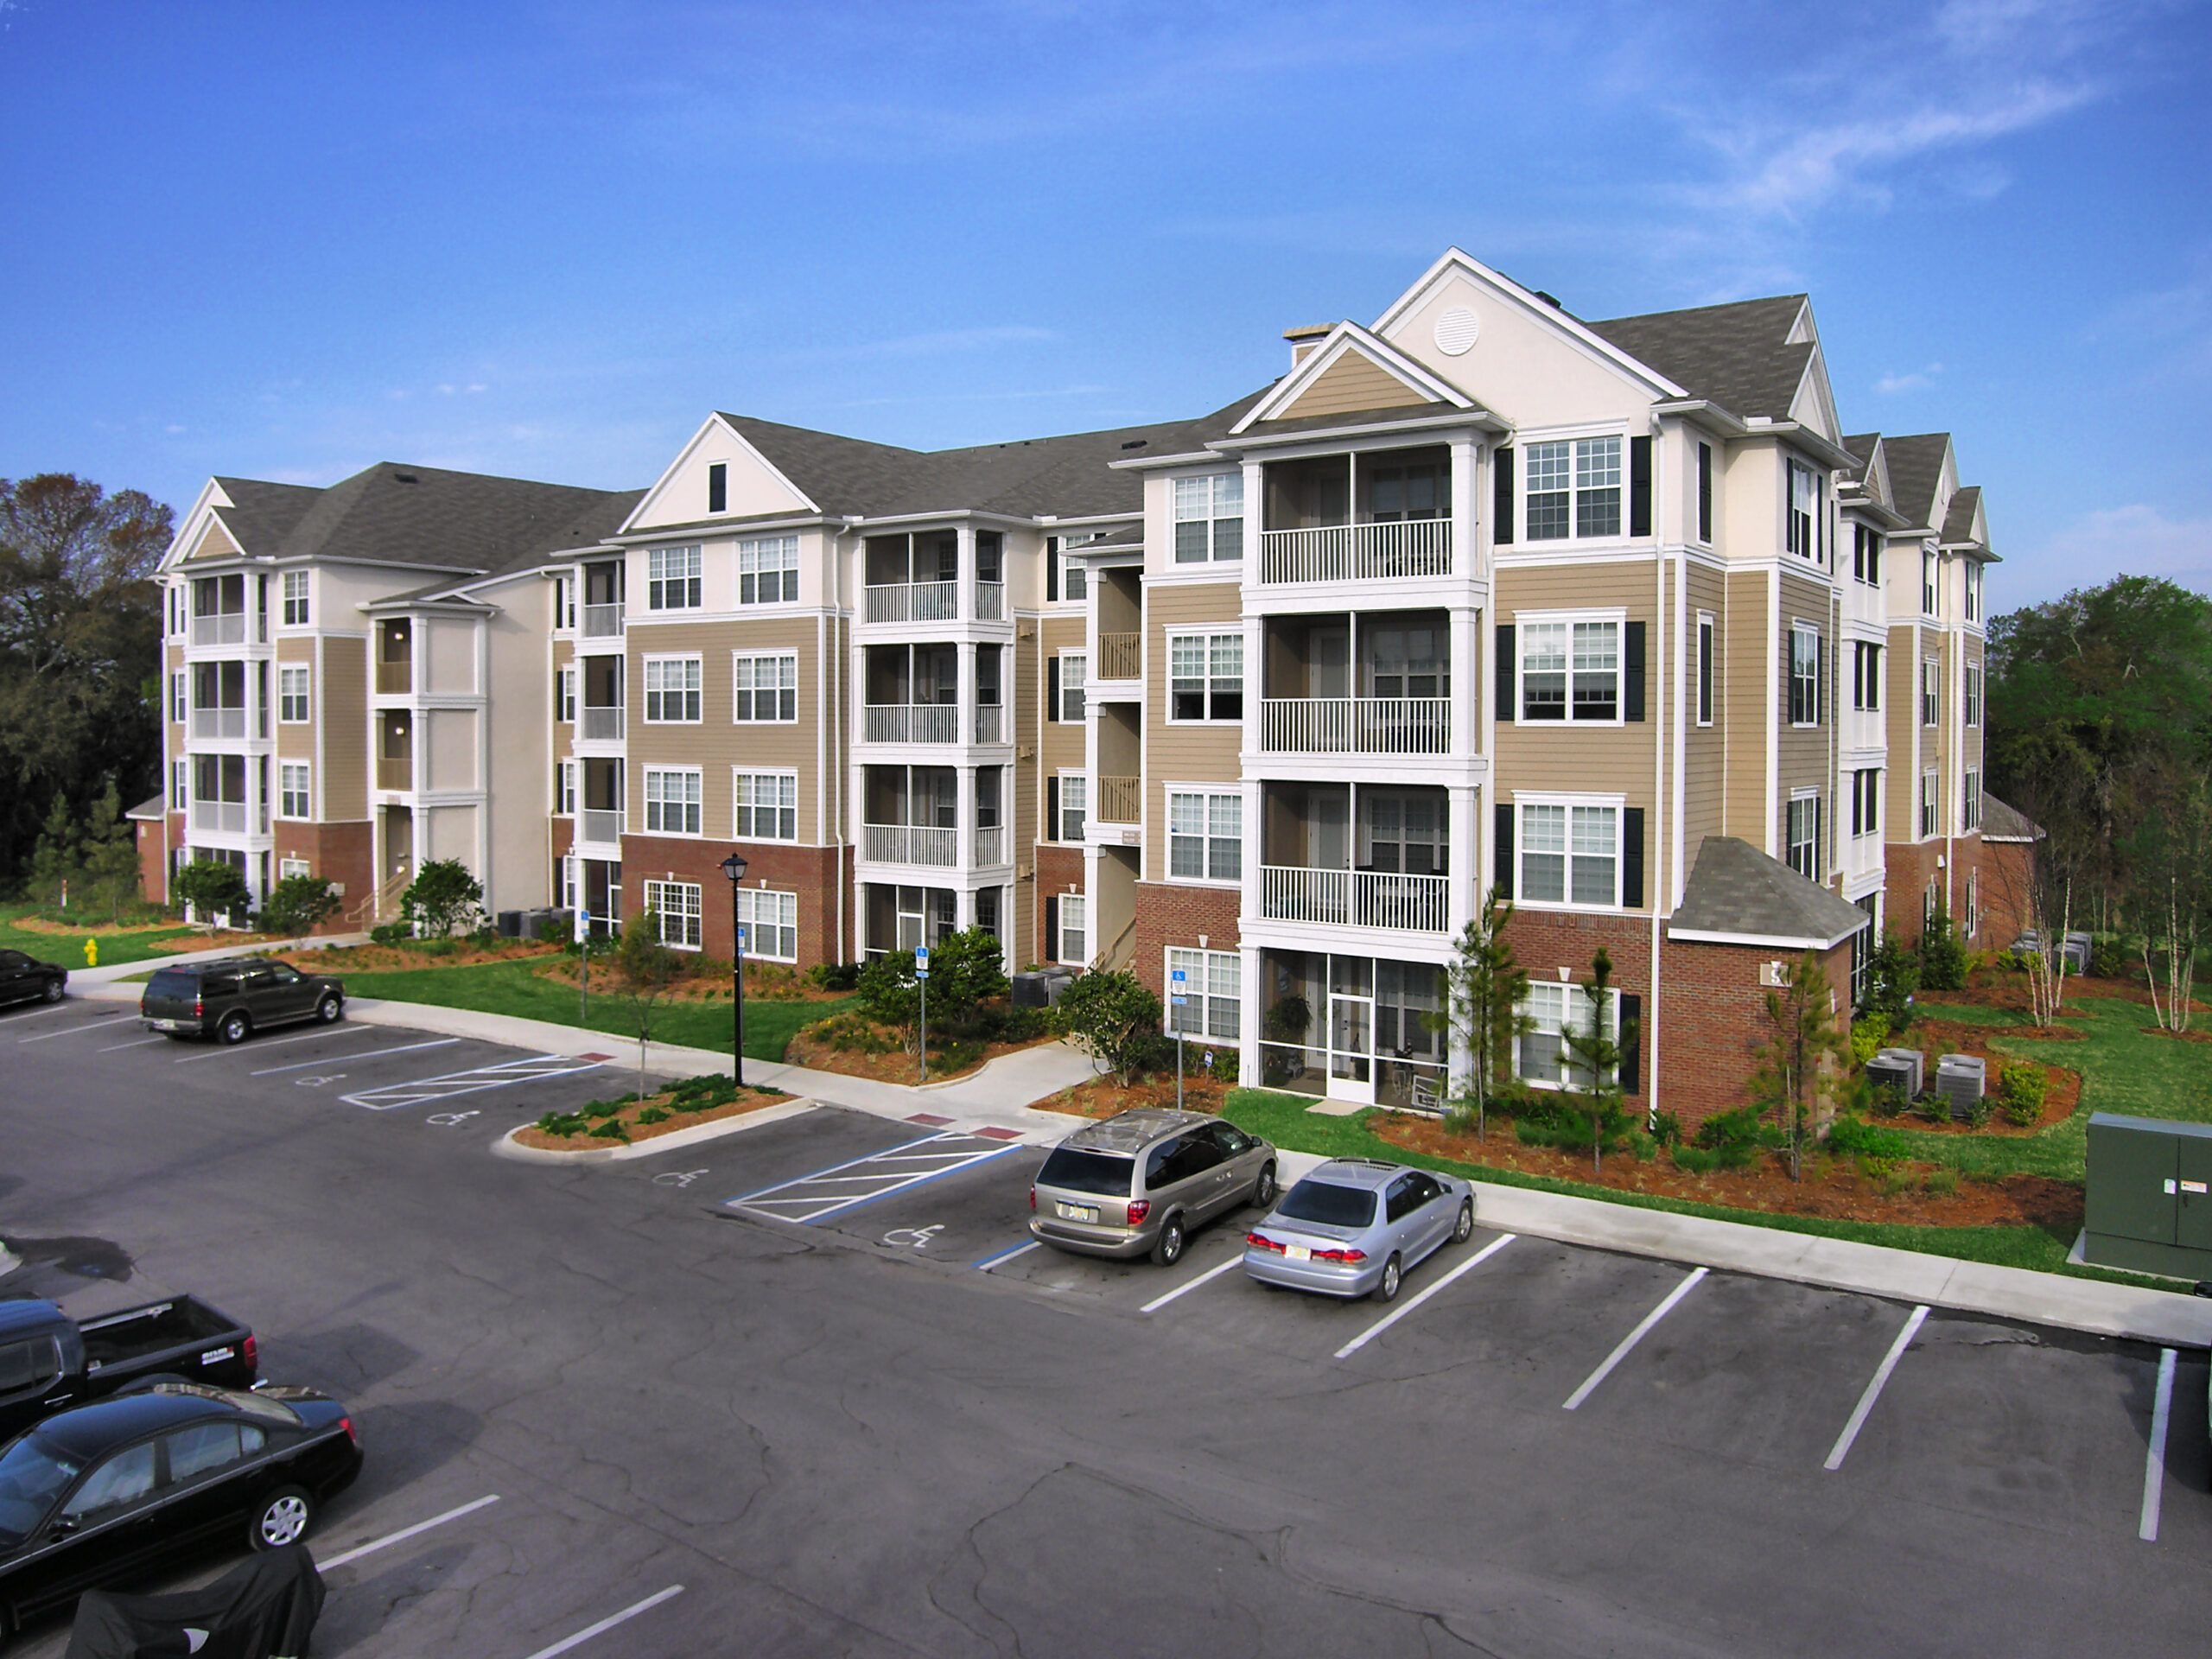 Why Prefer Condos For Sale Over Apartments In The Area In 2020 Condos For Sale Condo Apartment Communities